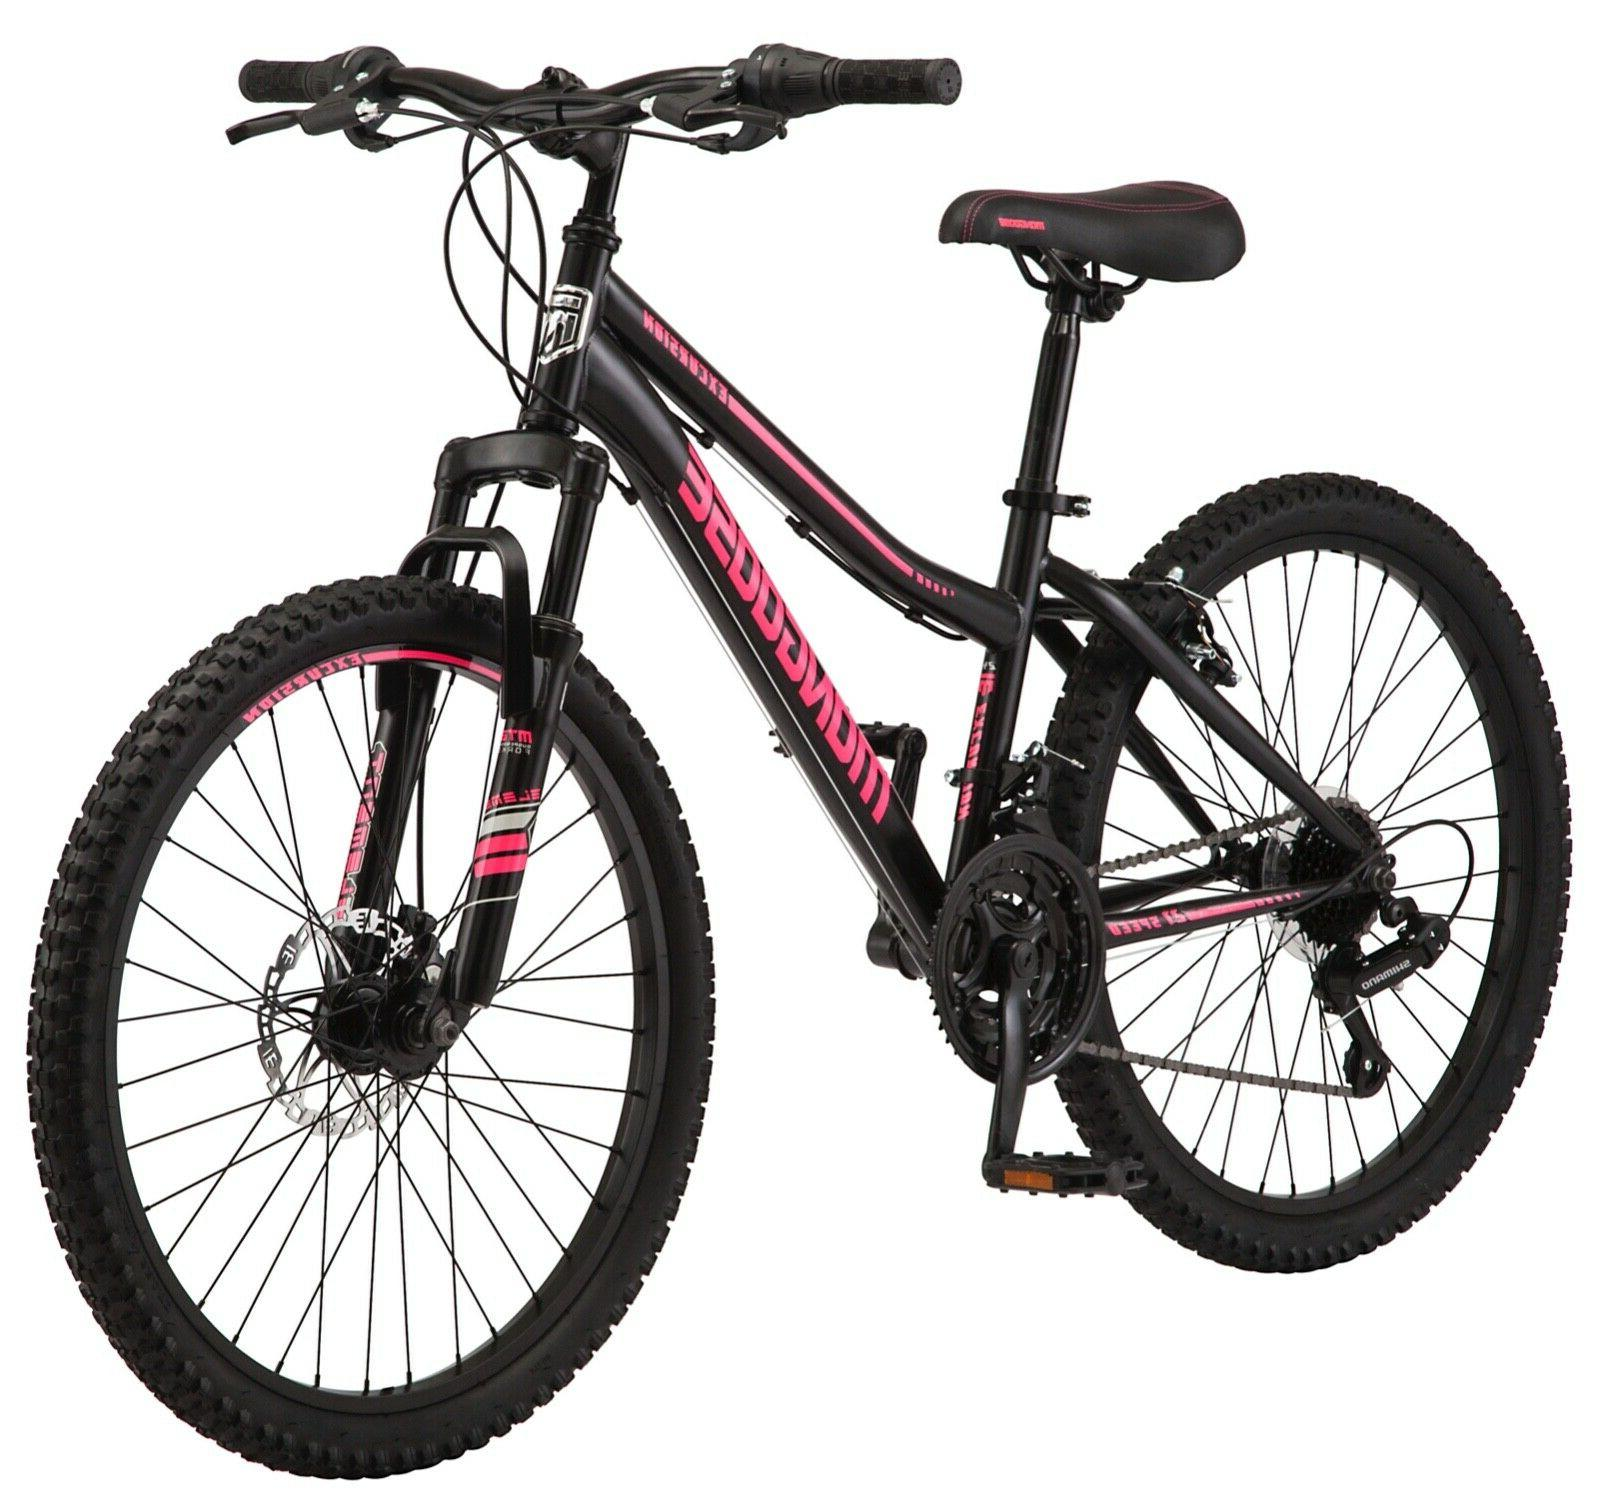 excursion mountain bike 24 inch wheel 21